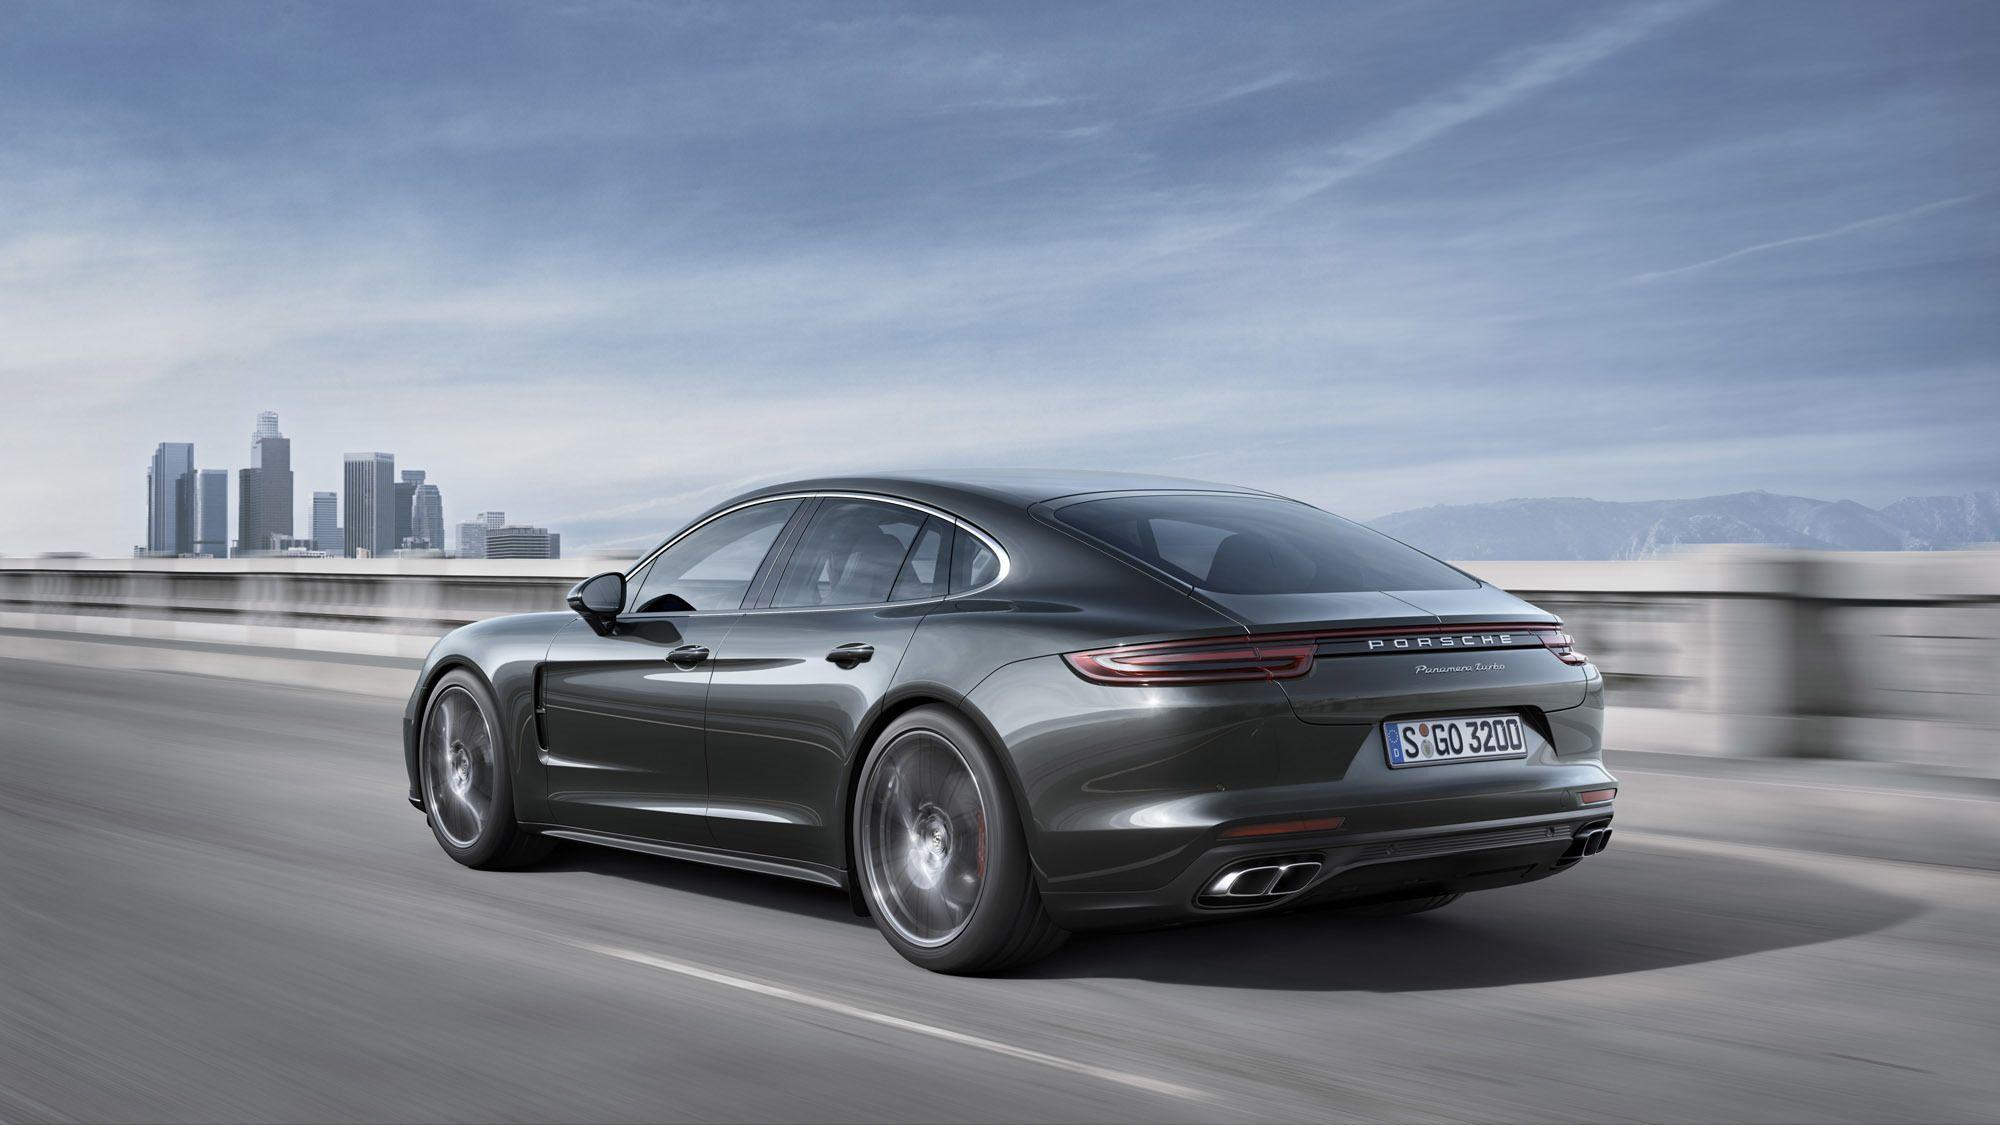 Porsche Panamera 2016 Wallpapers Images Photos Pictures Backgrounds